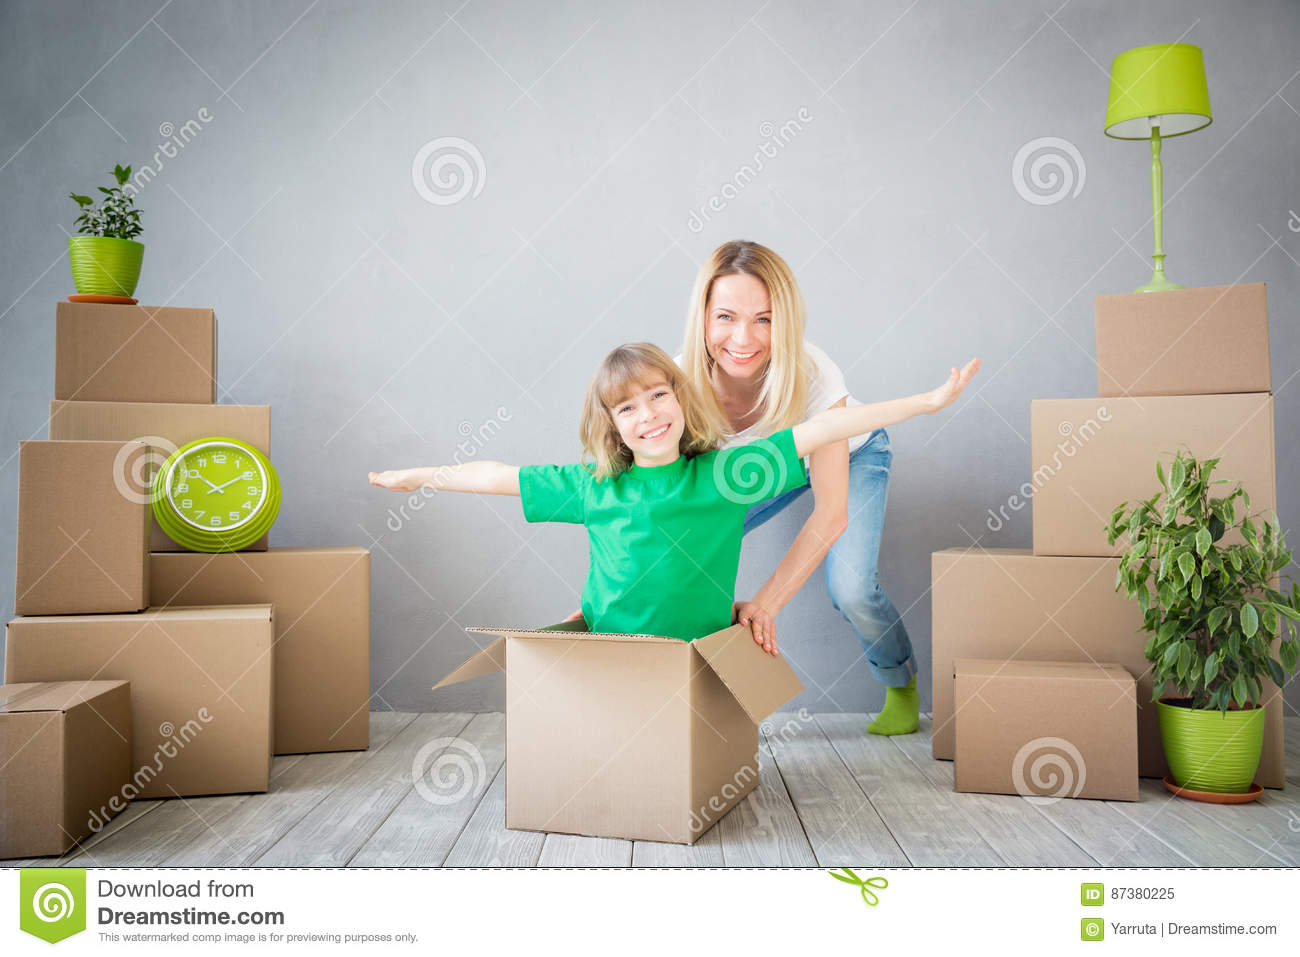 Download Family New Home Moving Day House Concept Stock Image - Image of cardboard, enjoy: 87380225